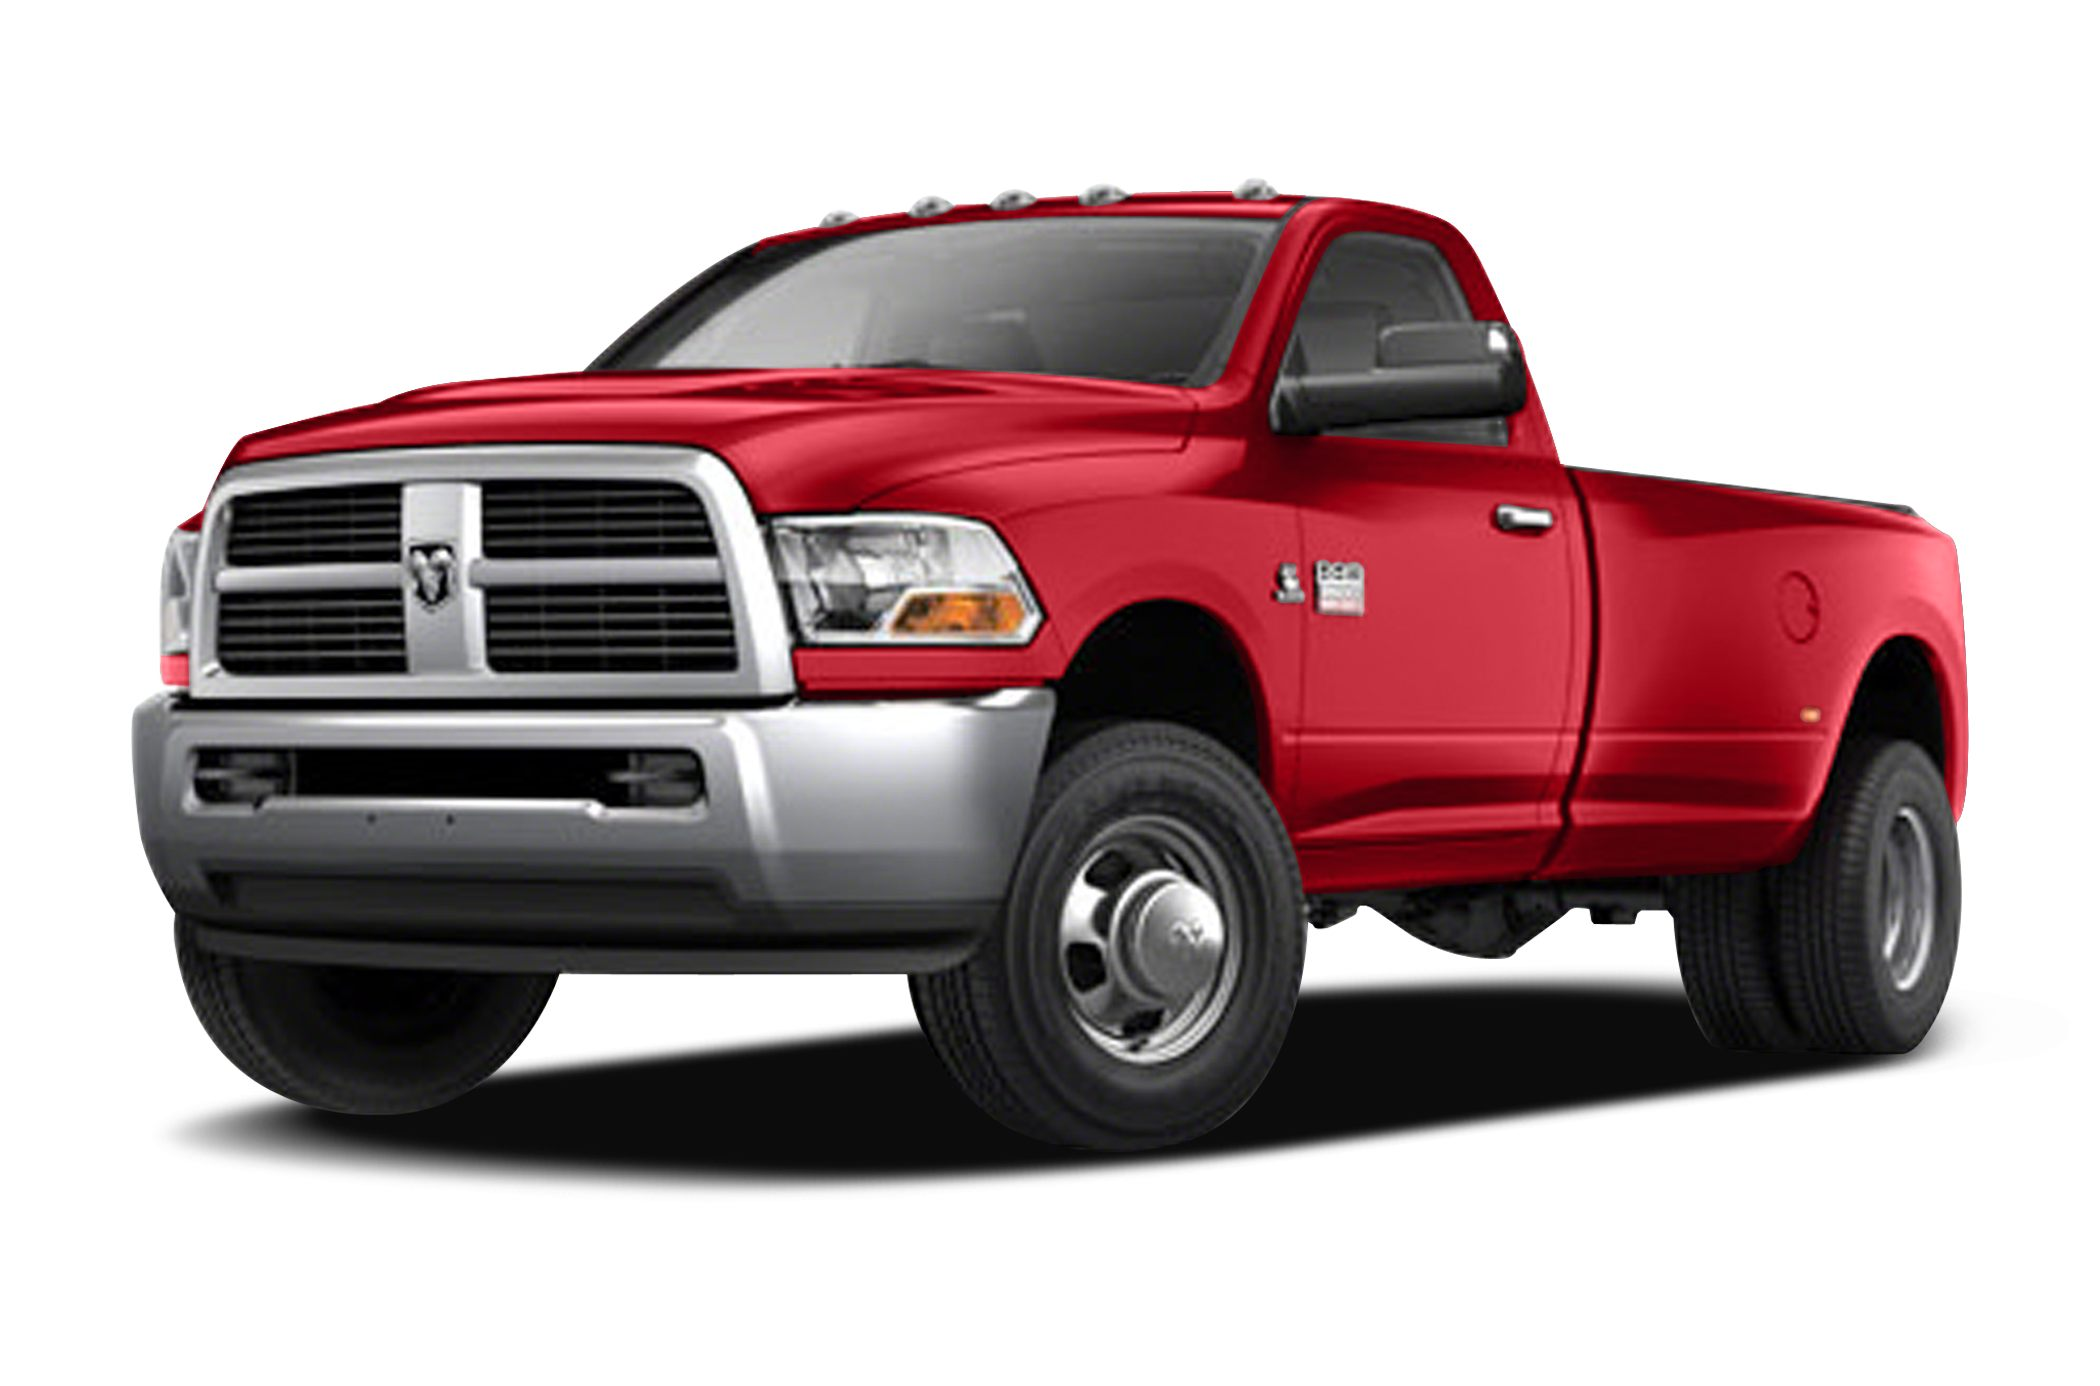 2012 RAM 3500 SLT Crew Cab Pickup for sale in Dayton for $38,488 with 80,670 miles.